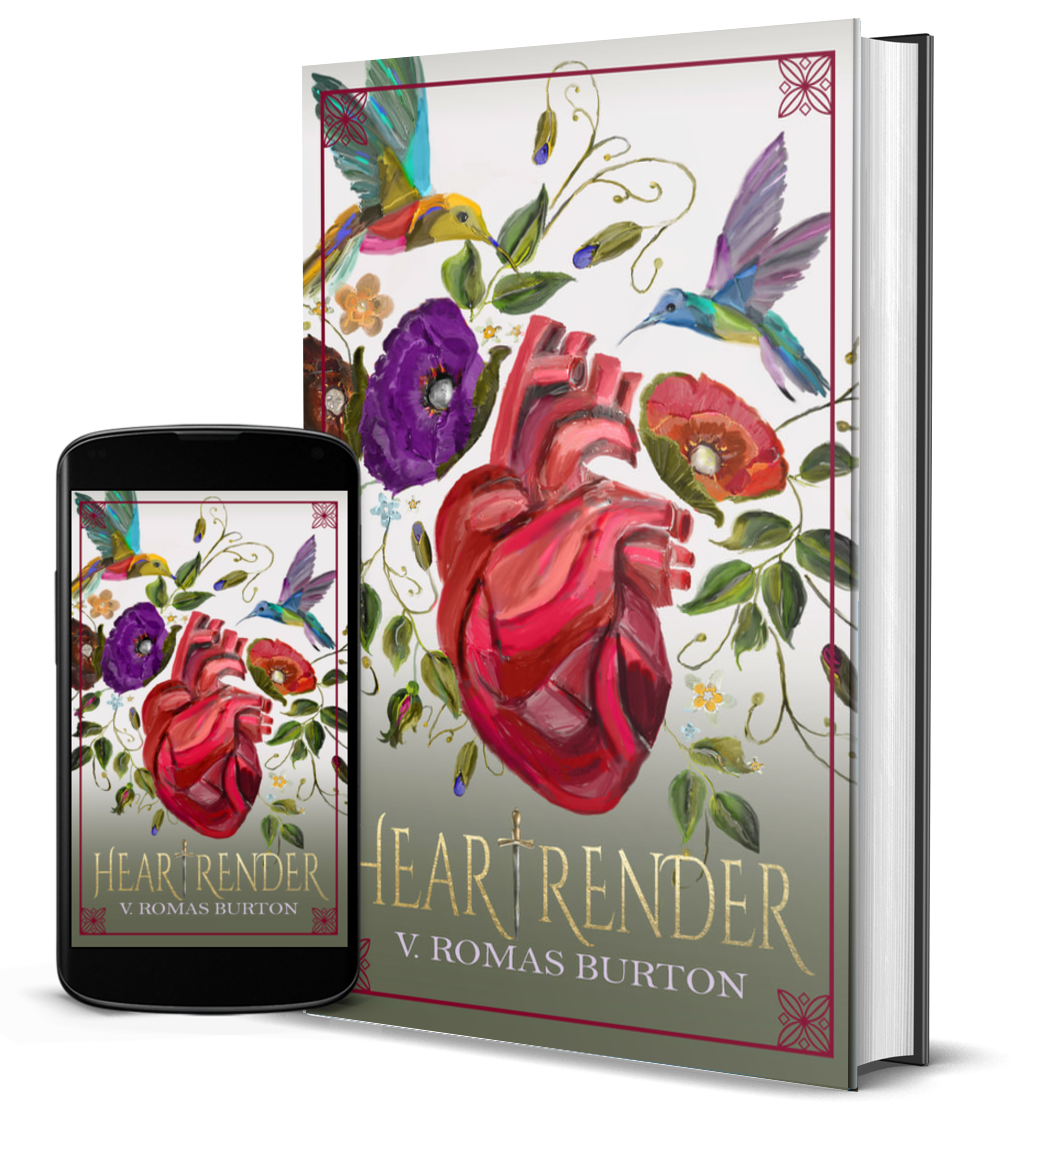 heartrender book cover and mobile screenshot